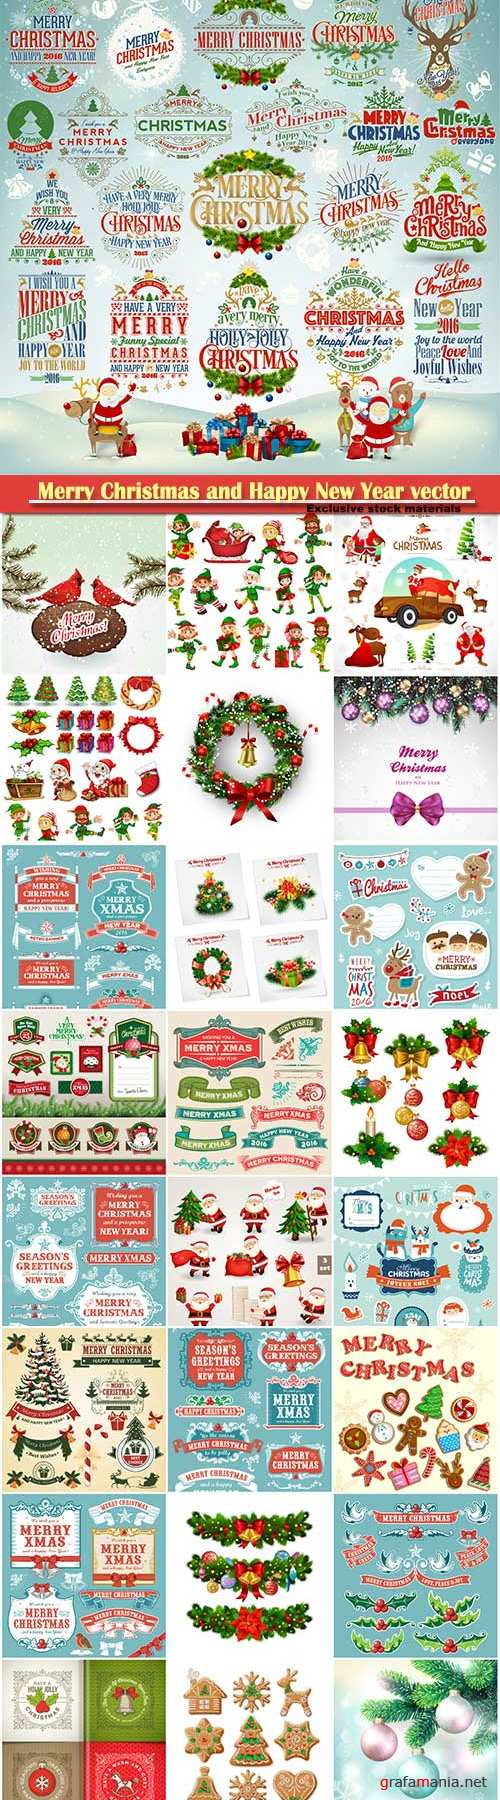 Merry Christmas and Happy New Year vector design # 20